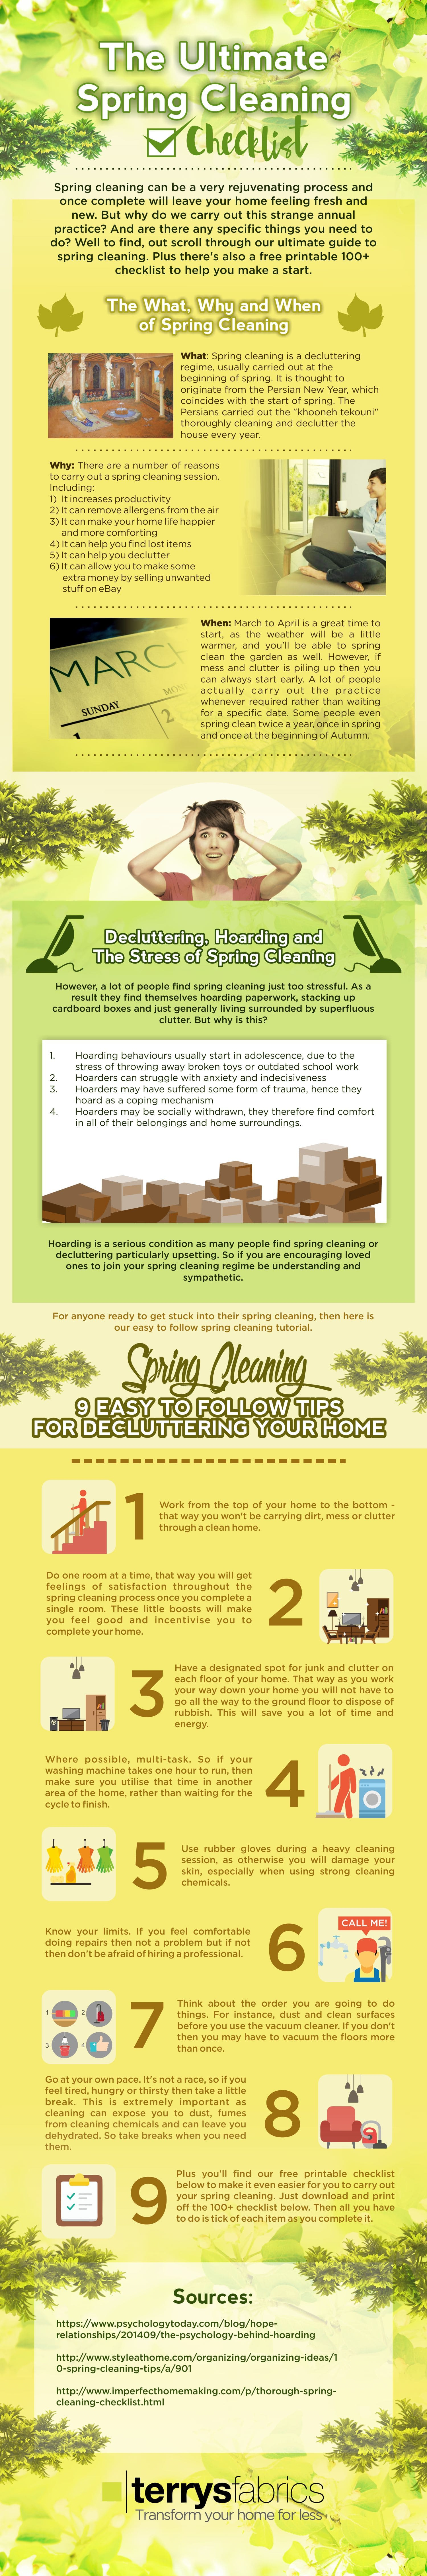 The Ultimate Spring Cleaning Checklist [Infographic]